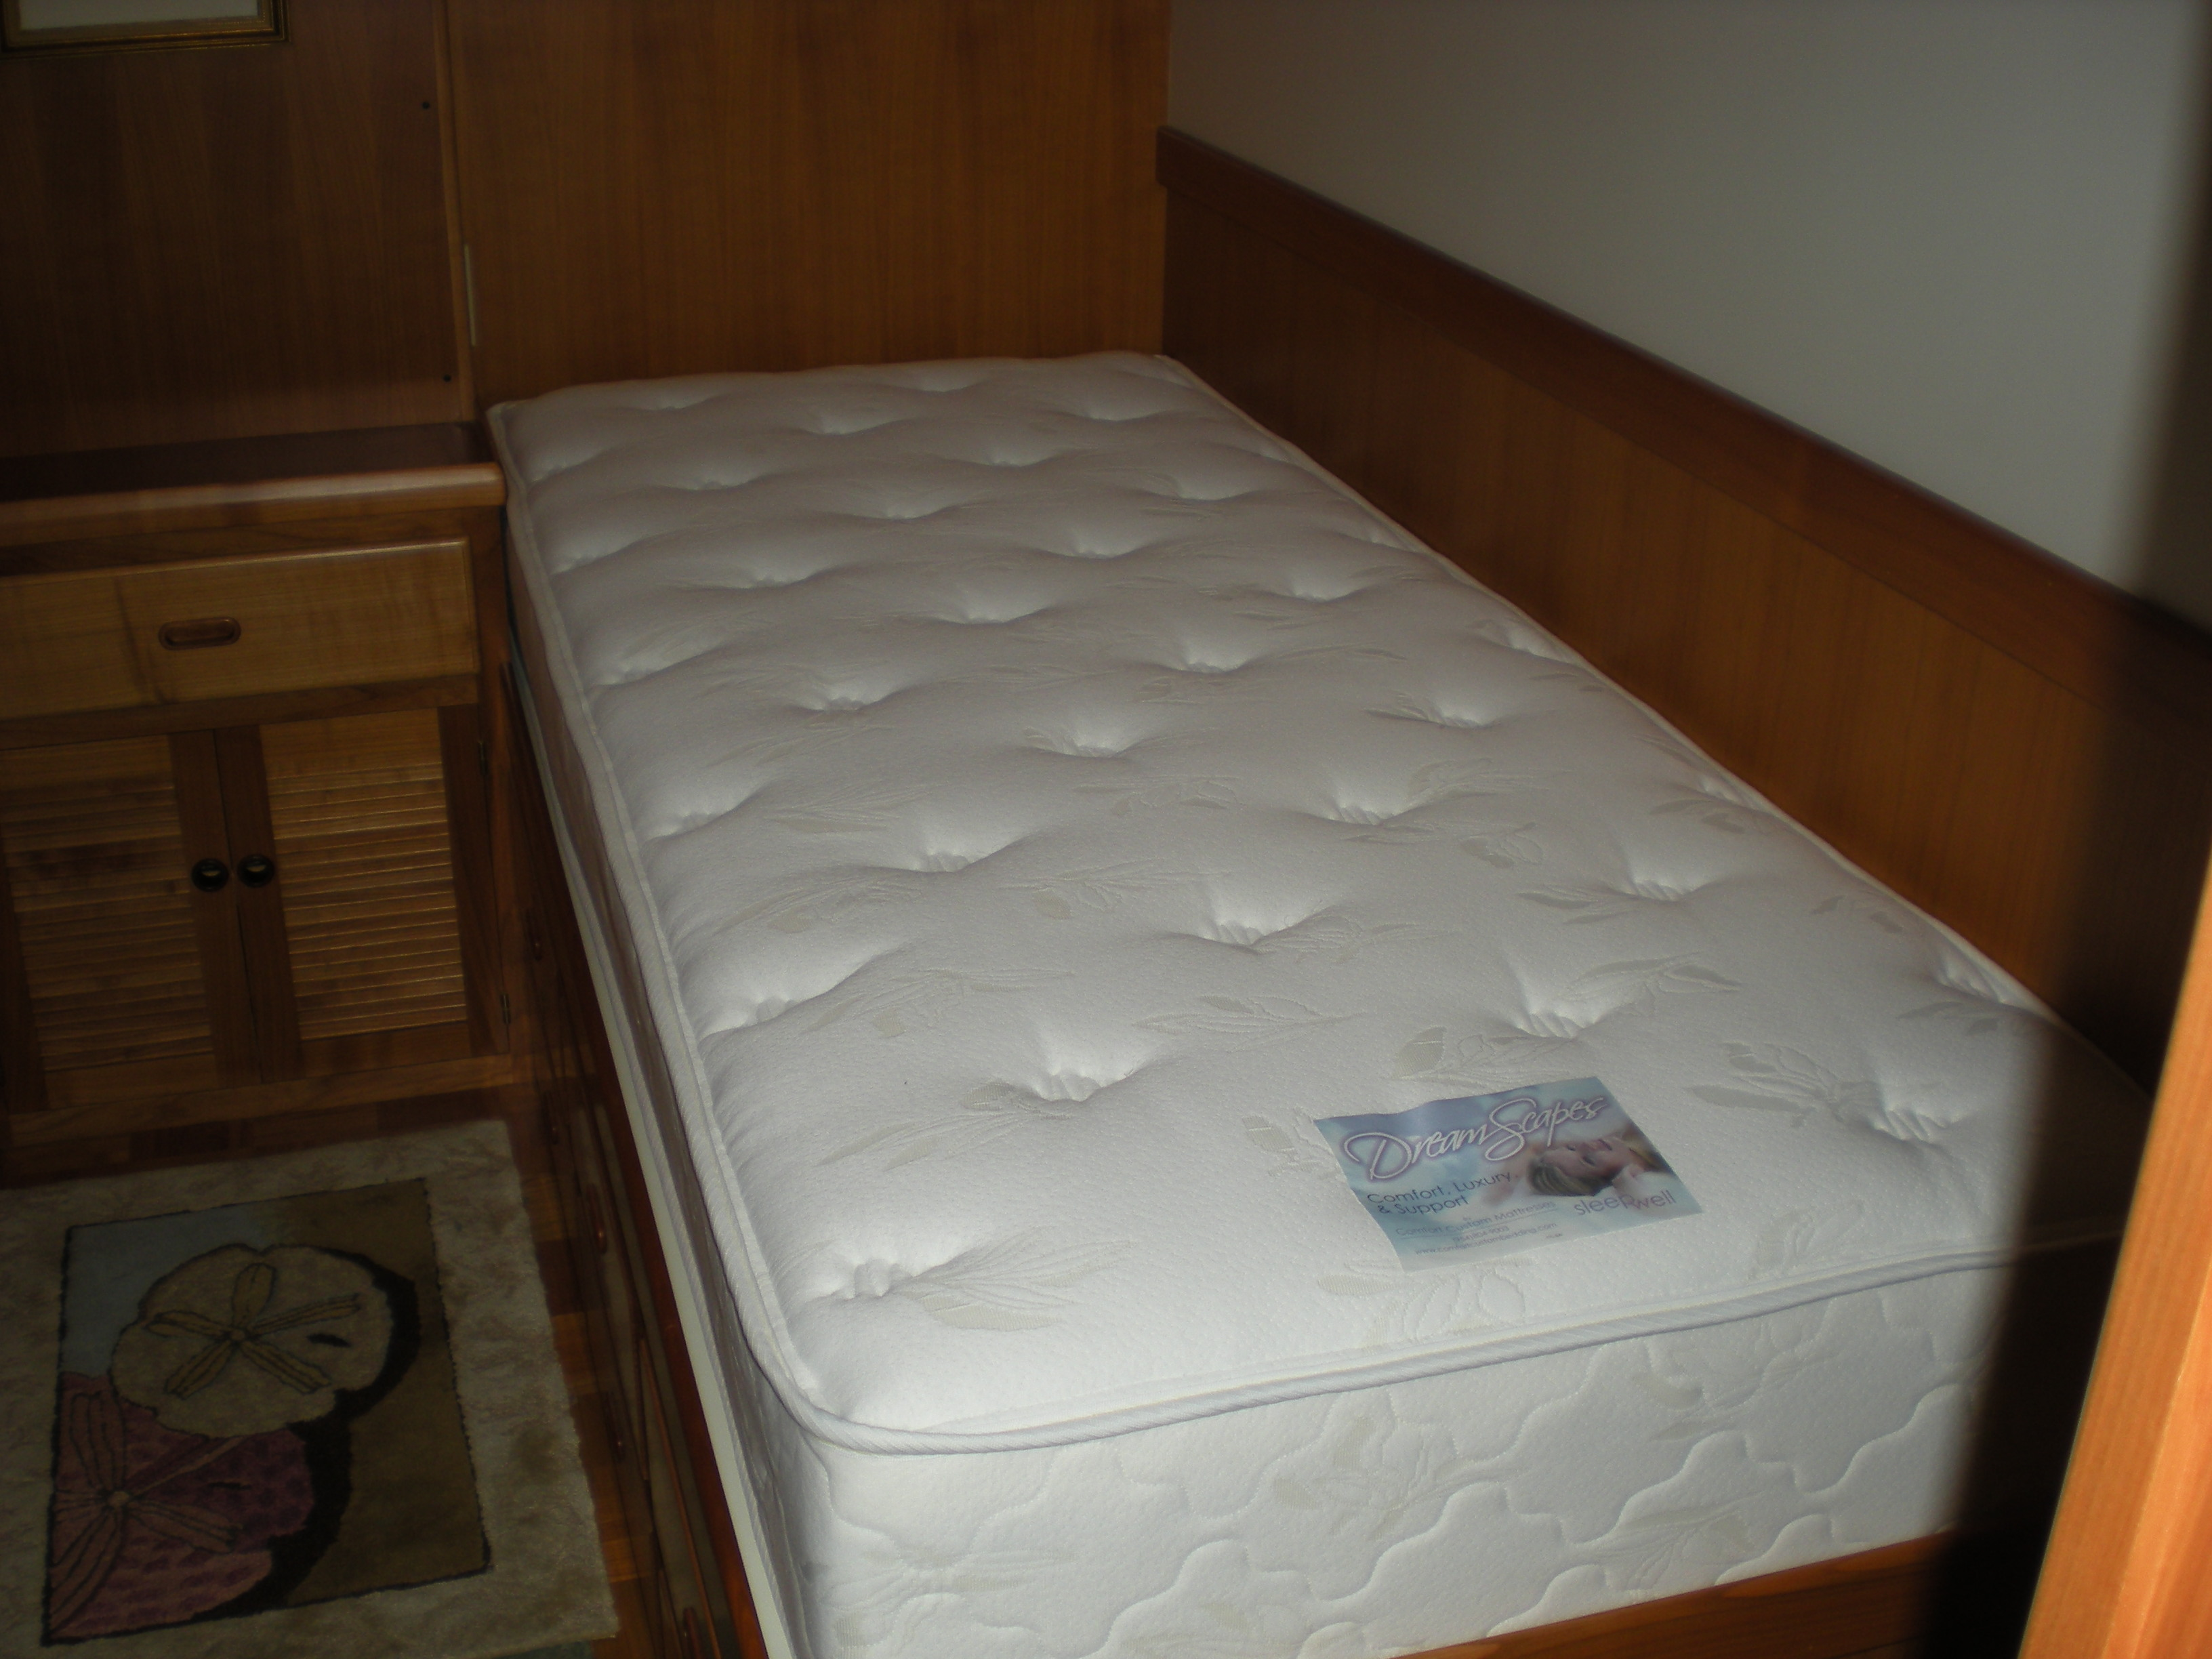 Amazing Queen Size Bed Dimensions Httpabbeddingcomelectrowarmthspecial